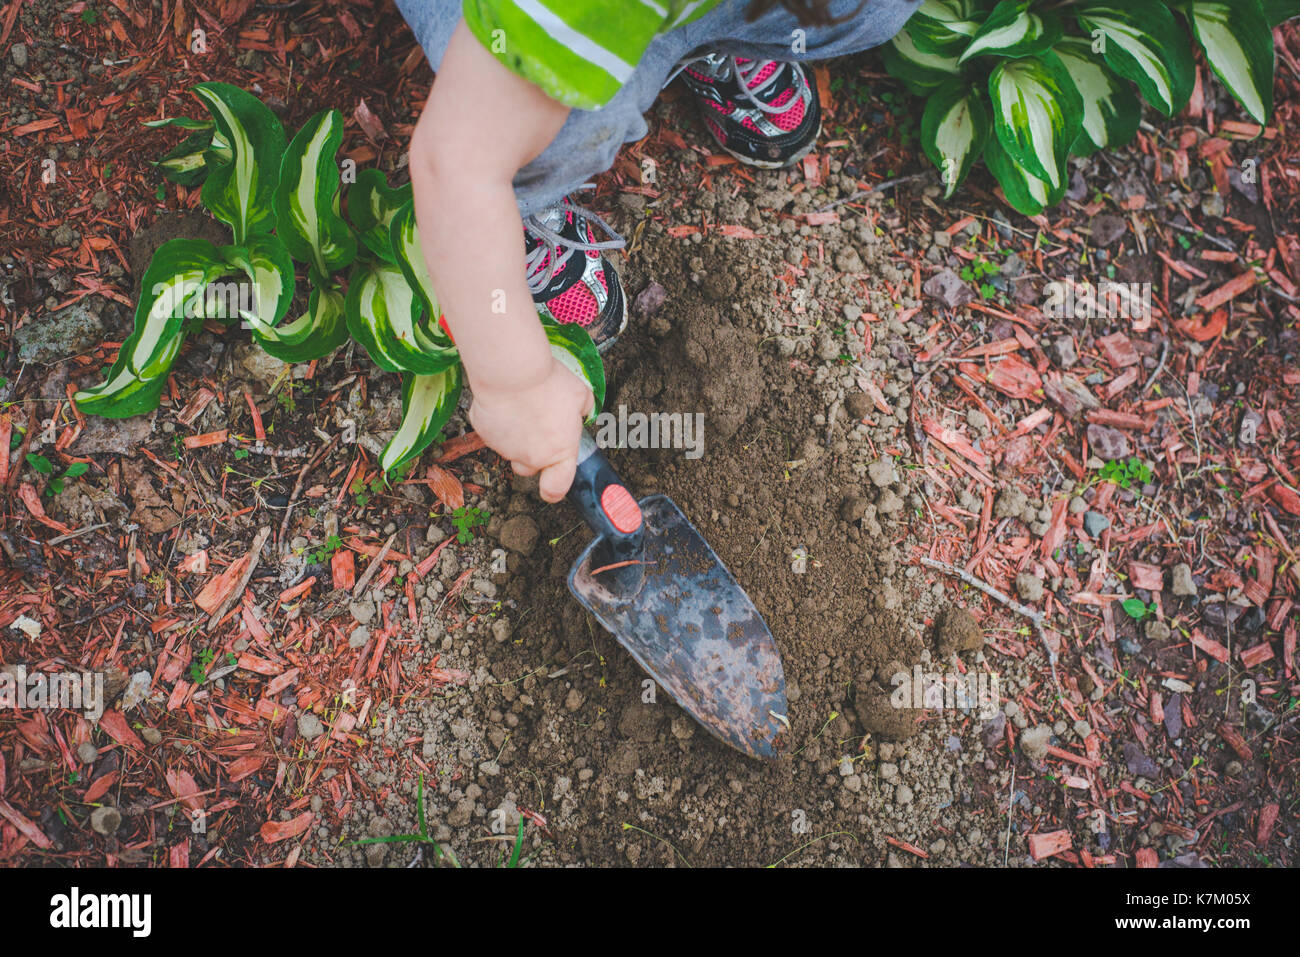 A little girl digs with a spade in a garden. - Stock Image